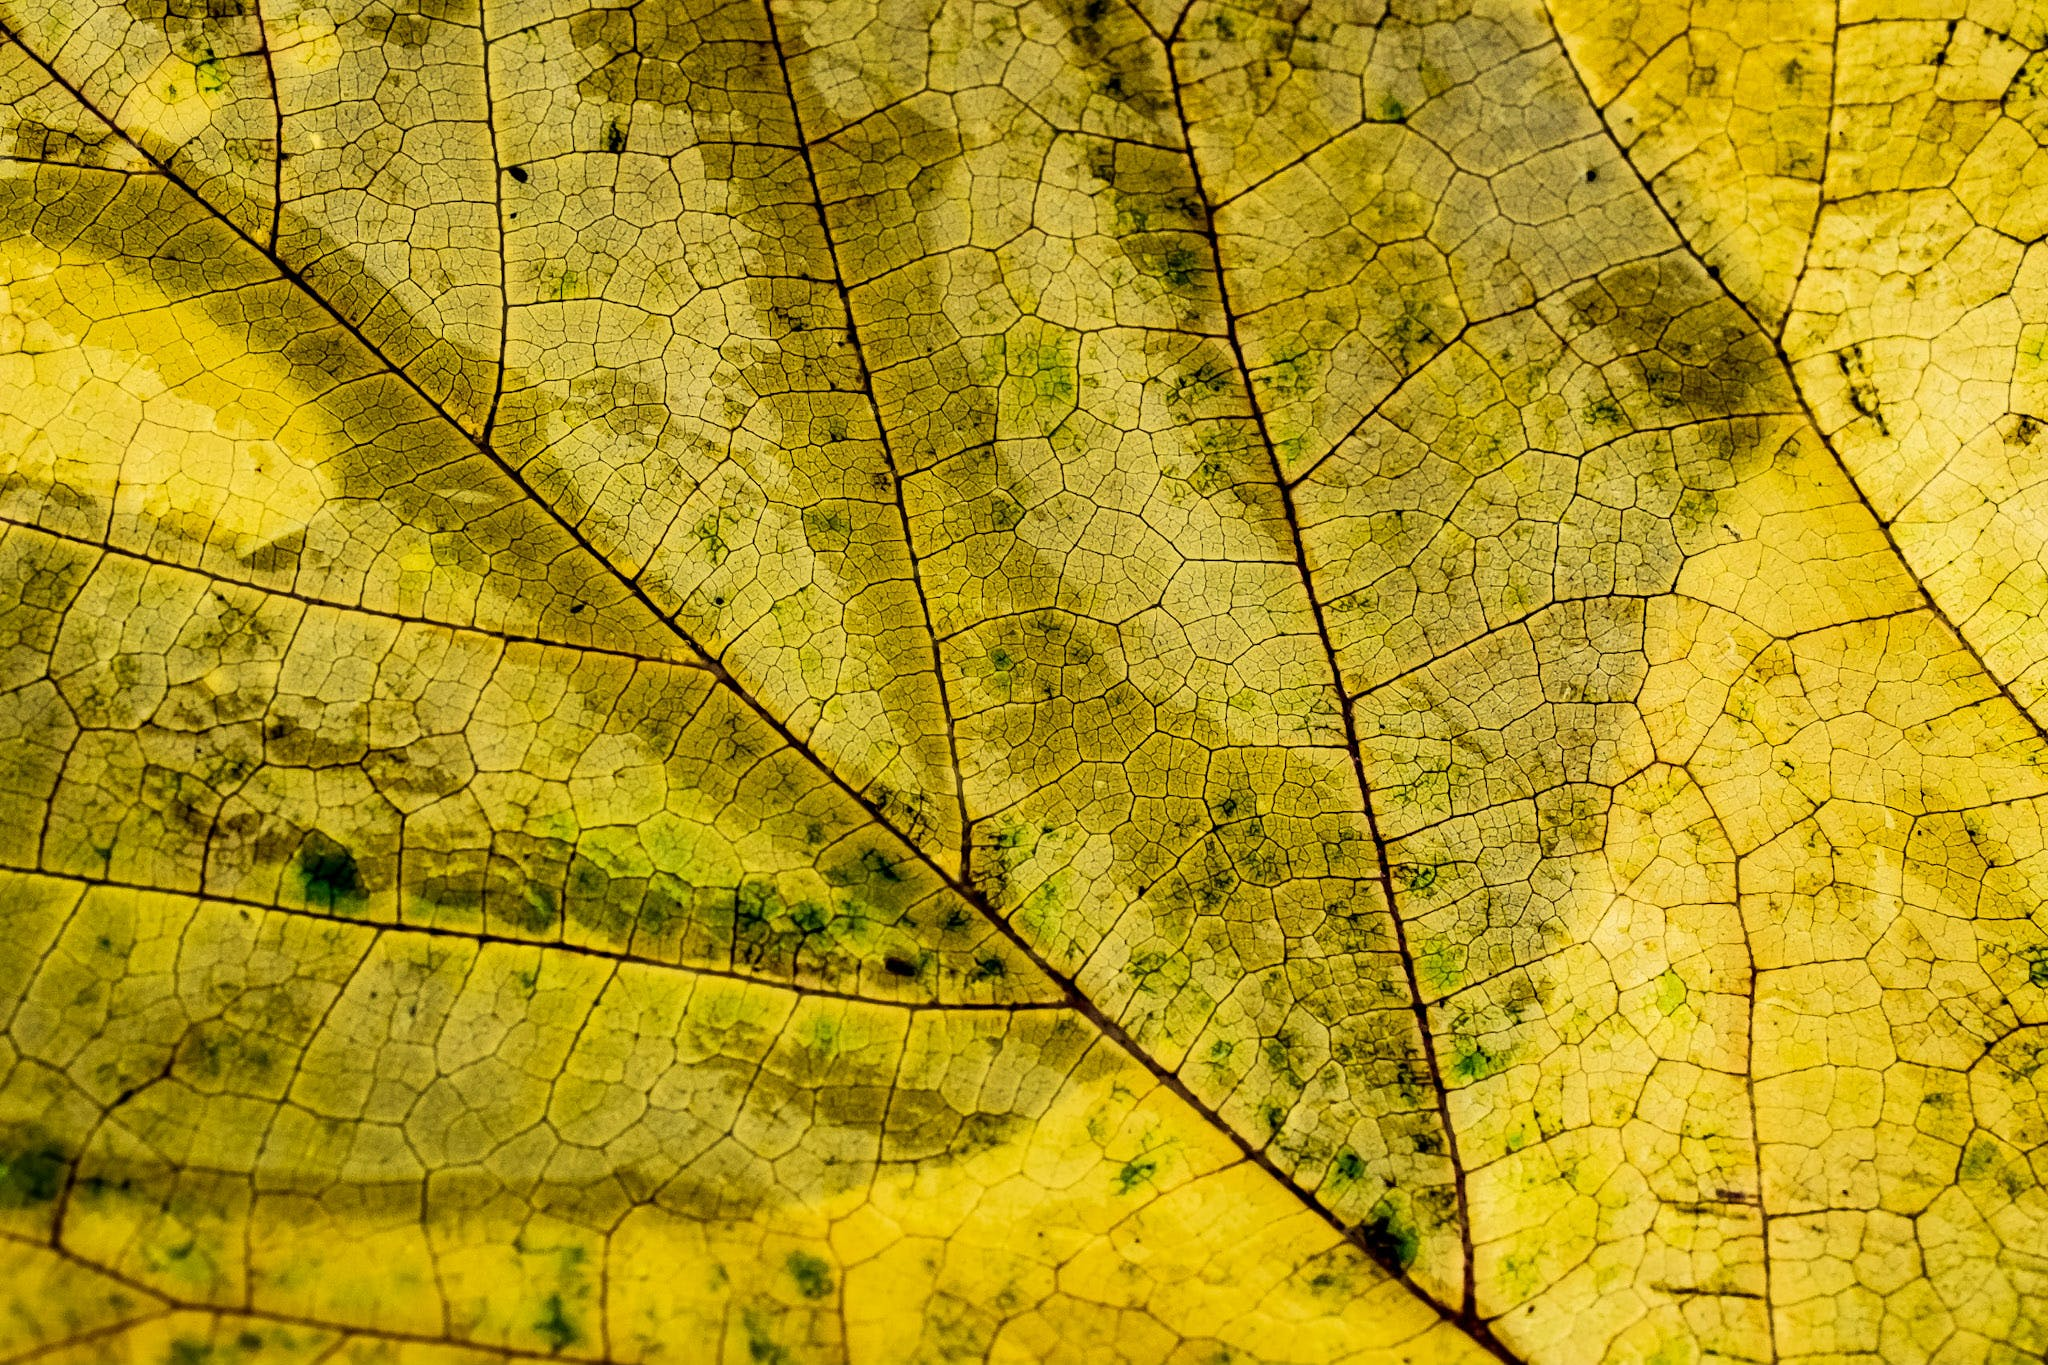 Close Up Photography of Dried Leaf